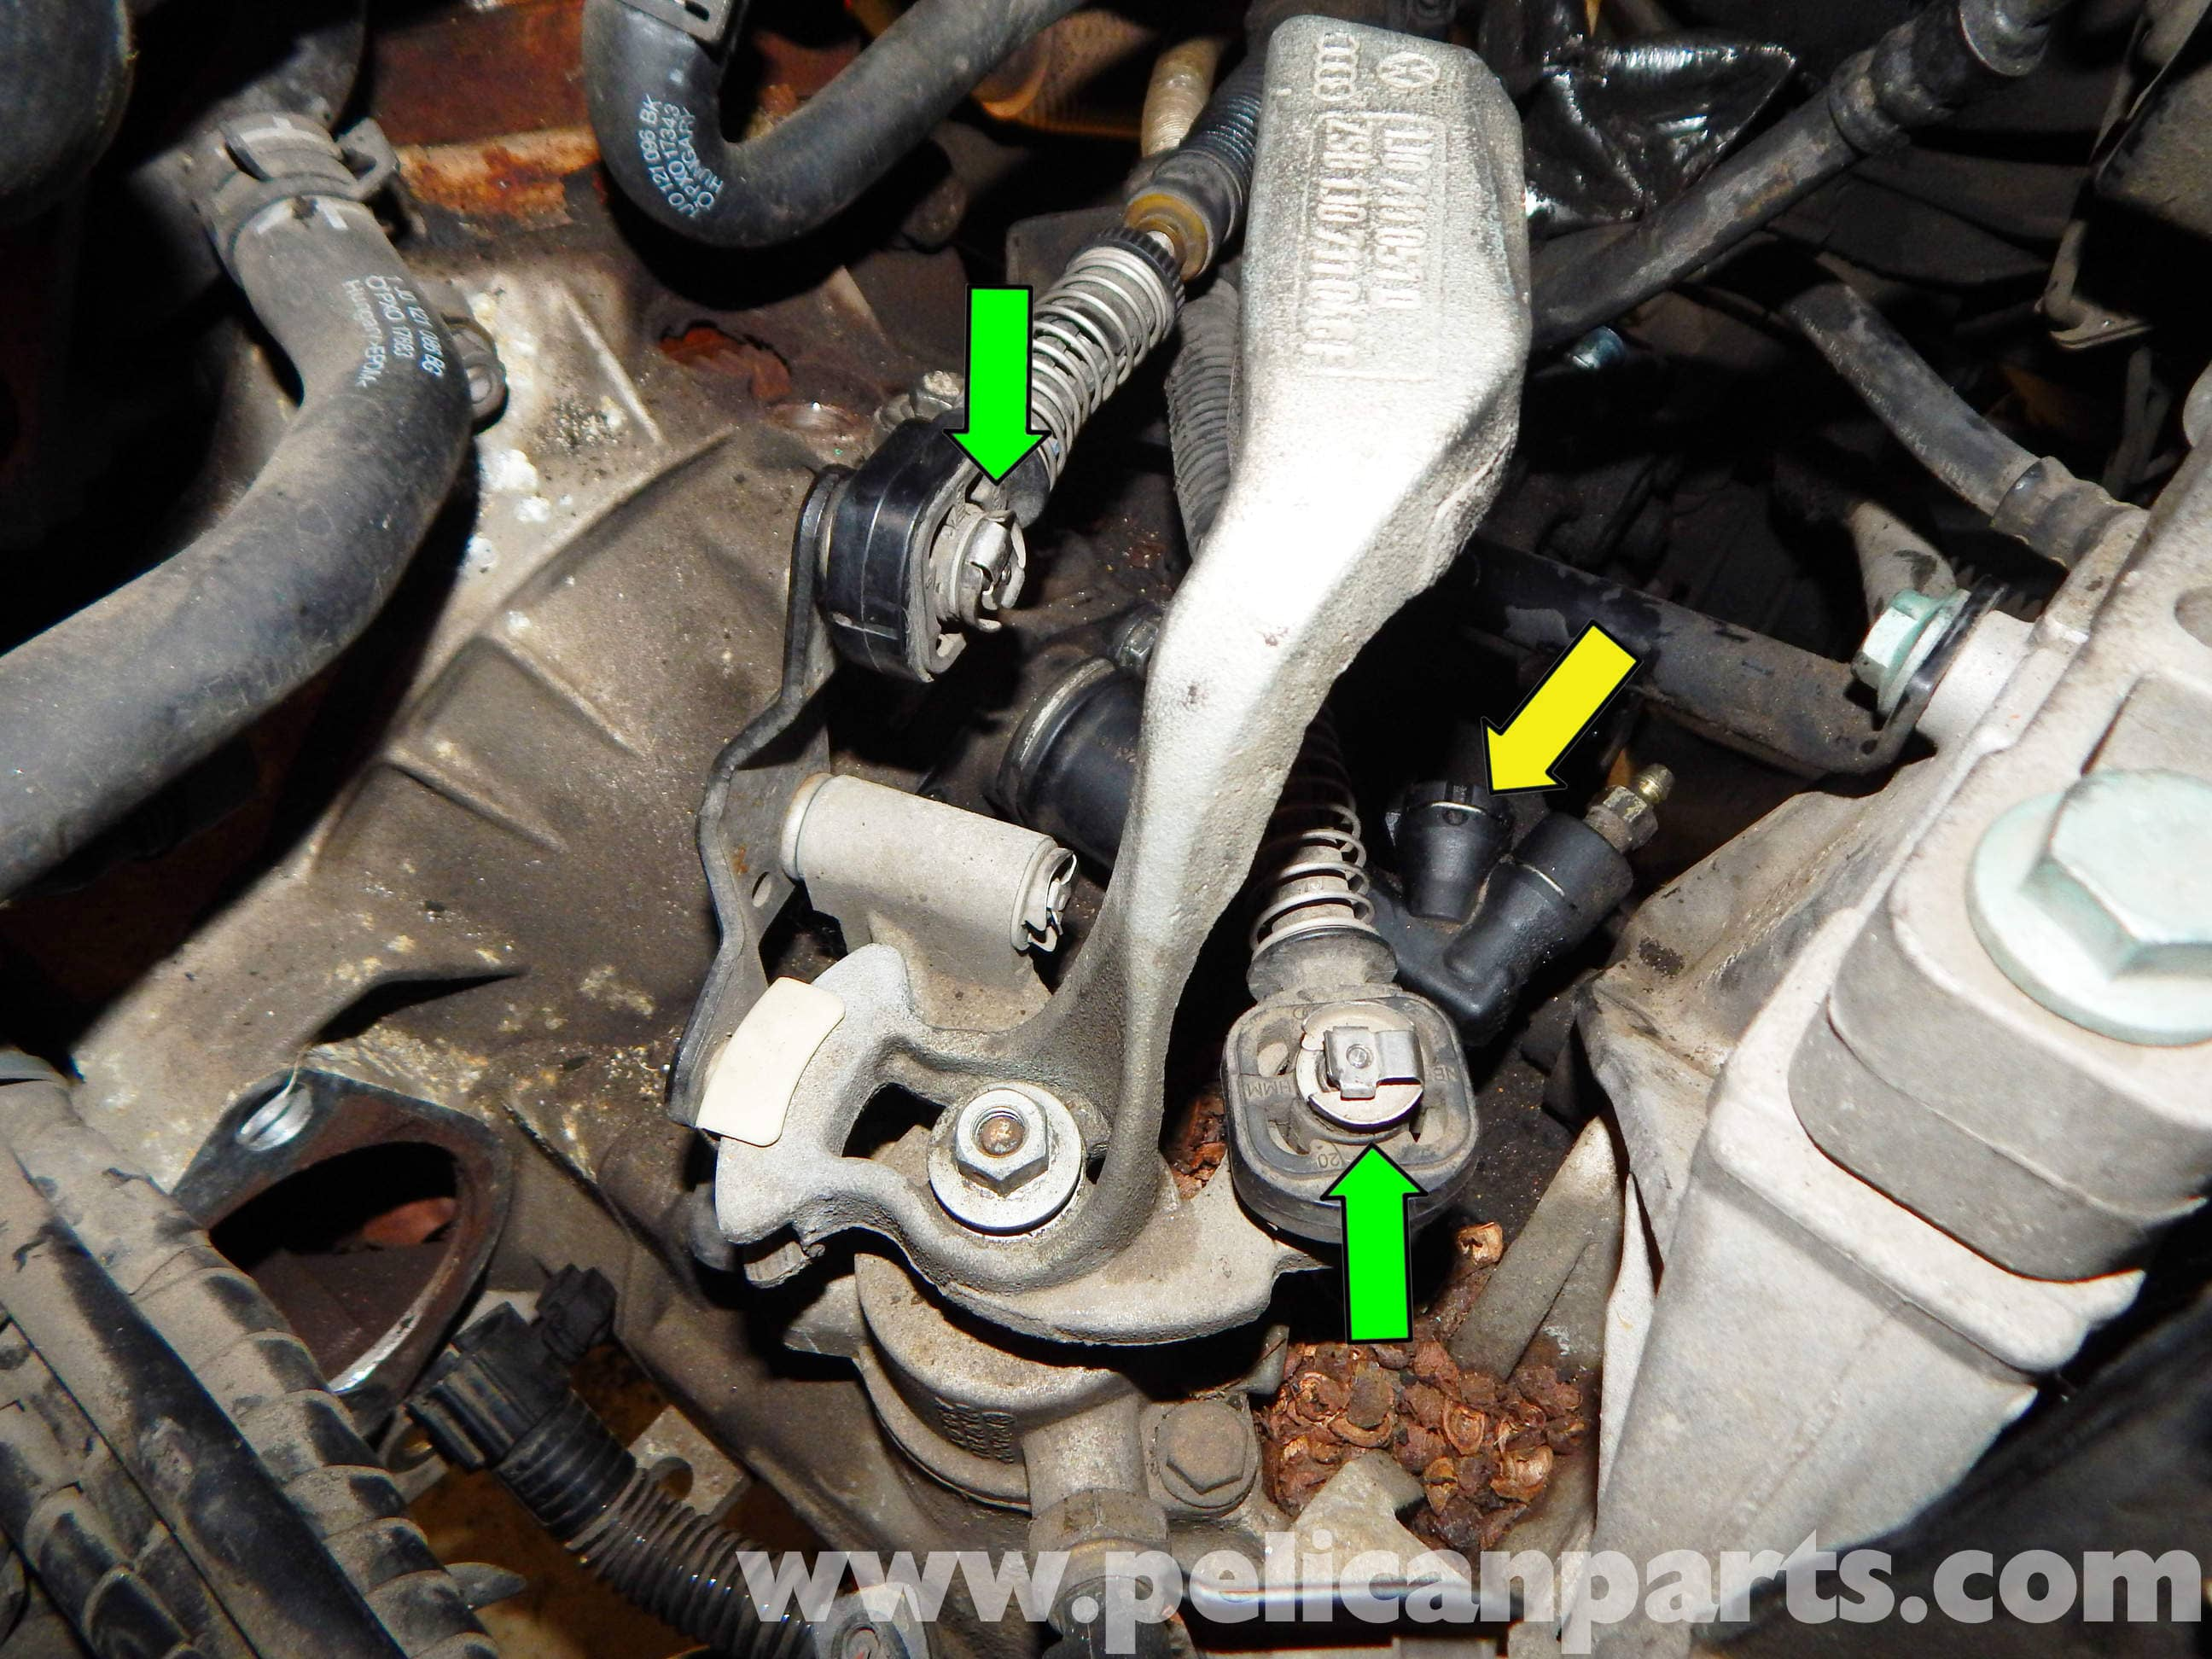 Vw Jetta Clutch Diagram - Wiring Diagram Structure